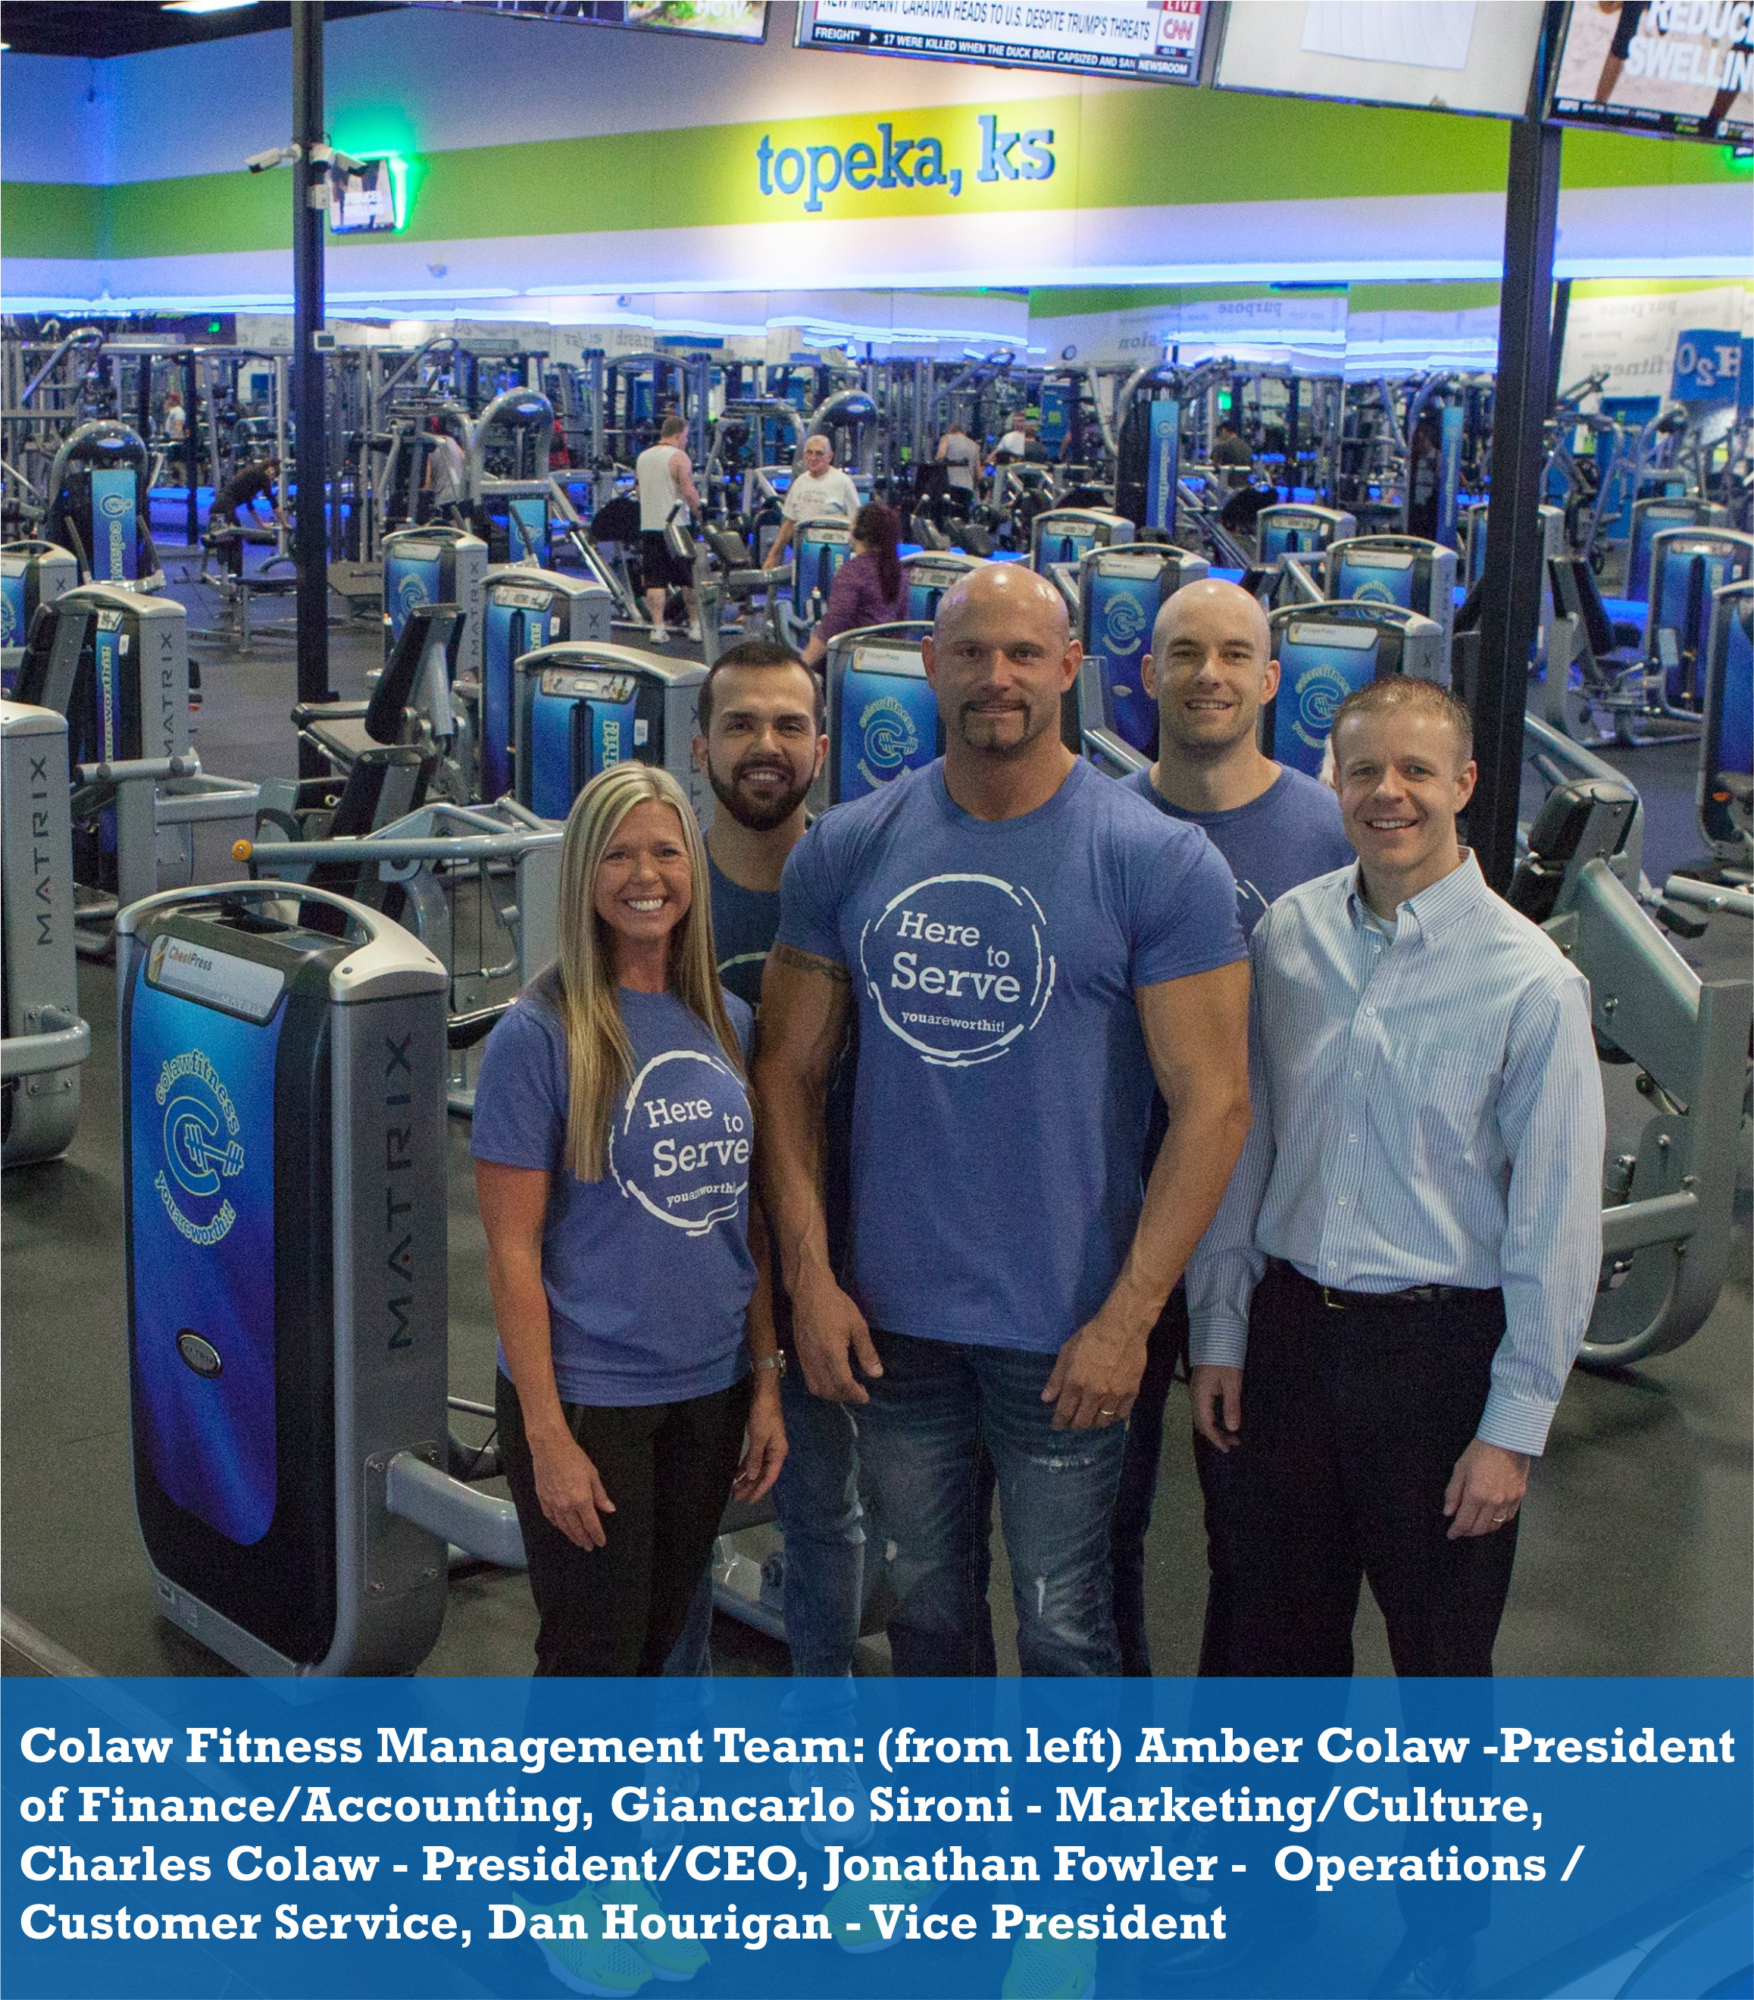 Colaw Fitness - Management Team